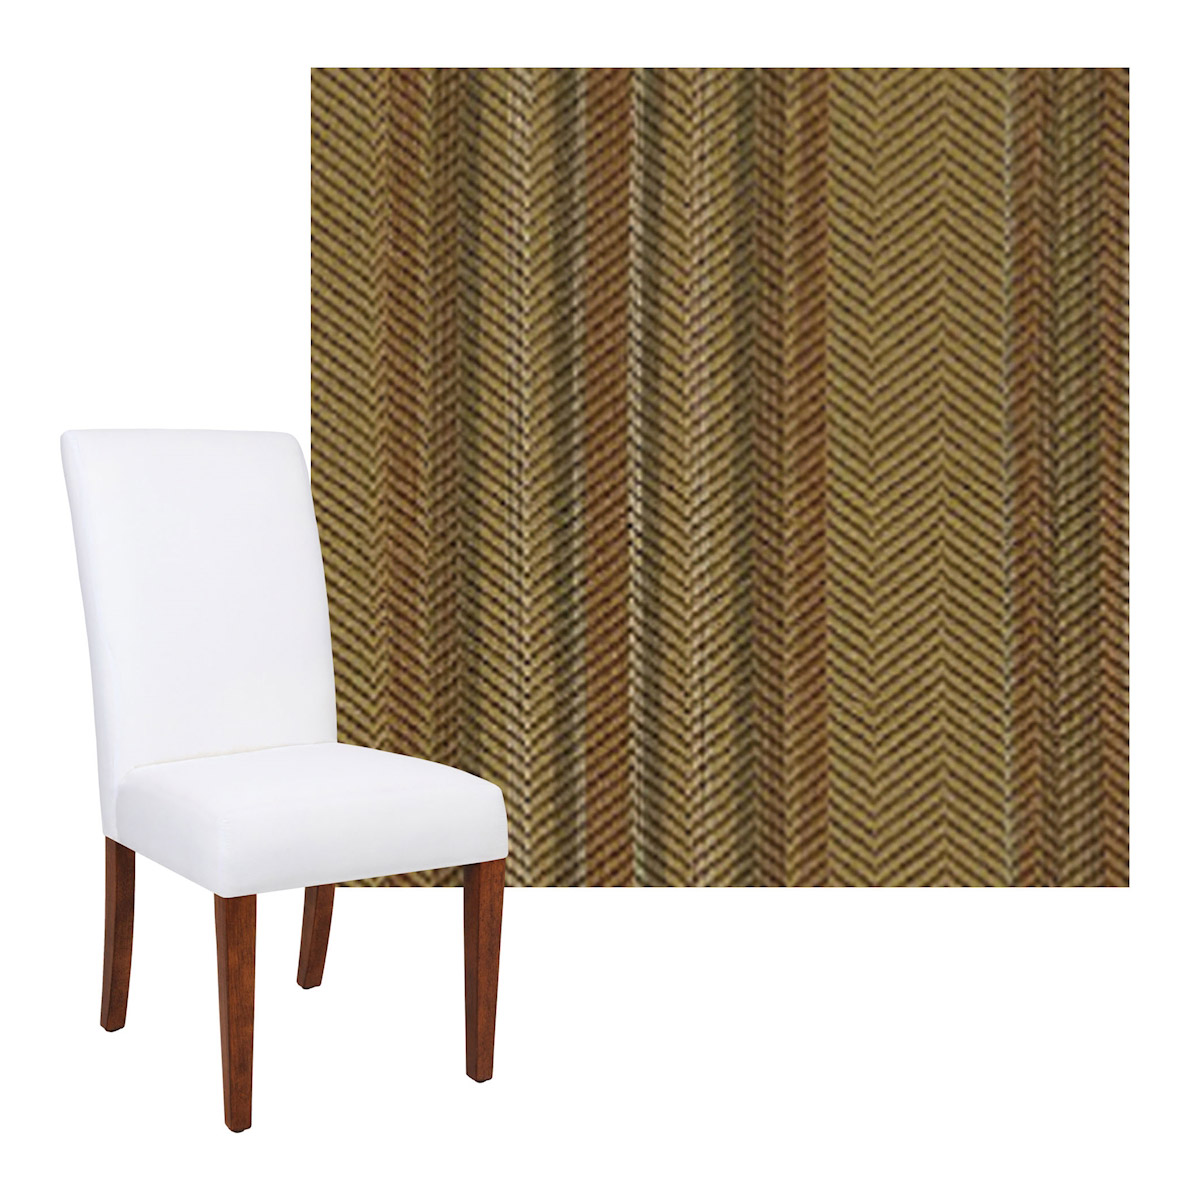 Astounding Details About Sterling Industries 6092780 Couture Covers Nelson Parsons Chair Cover Evergreenethics Interior Chair Design Evergreenethicsorg